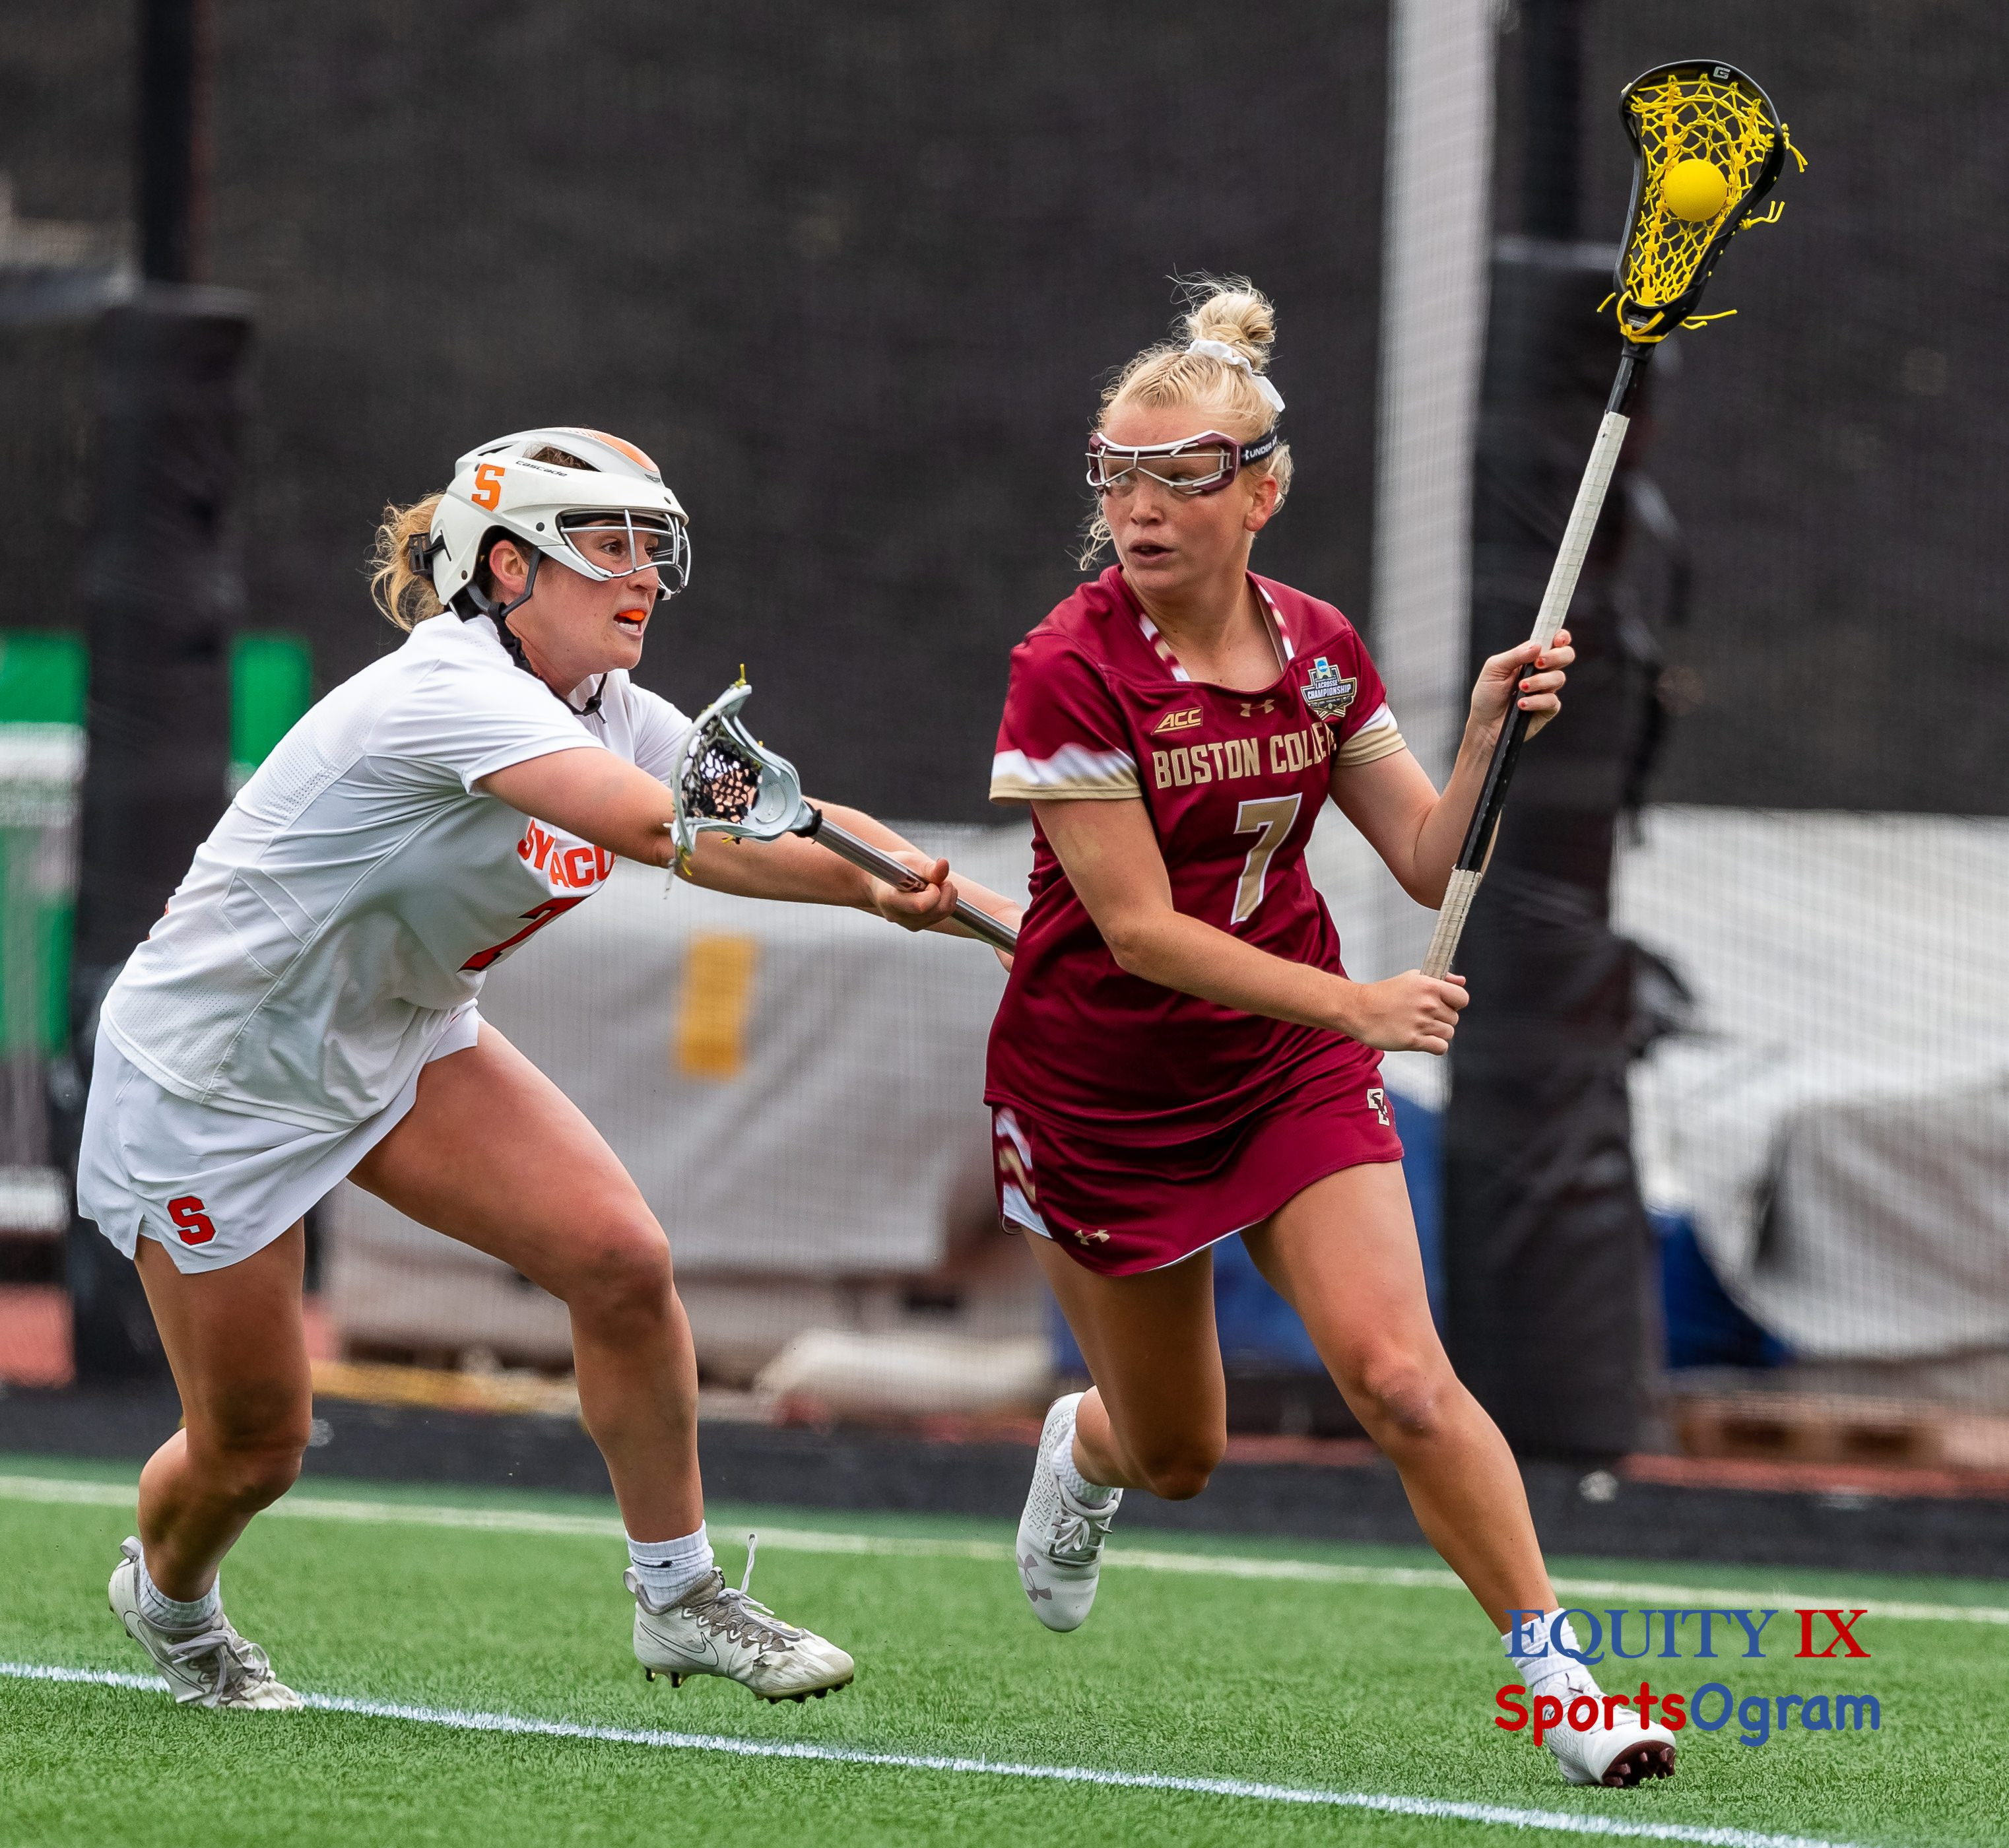 #7 Caitlynn Mossman (Boston College) looks to pass the yellow lacrosse ball left handed wearing goggles from behind the cage with #7 Kerry Defliese (Syracuse) wearing a helmet with bright orange S on side - 2021 NCAA Women's Lacrosse Championship Game © Equity IX - SportsOgram - Leigh Ernst Friestedt